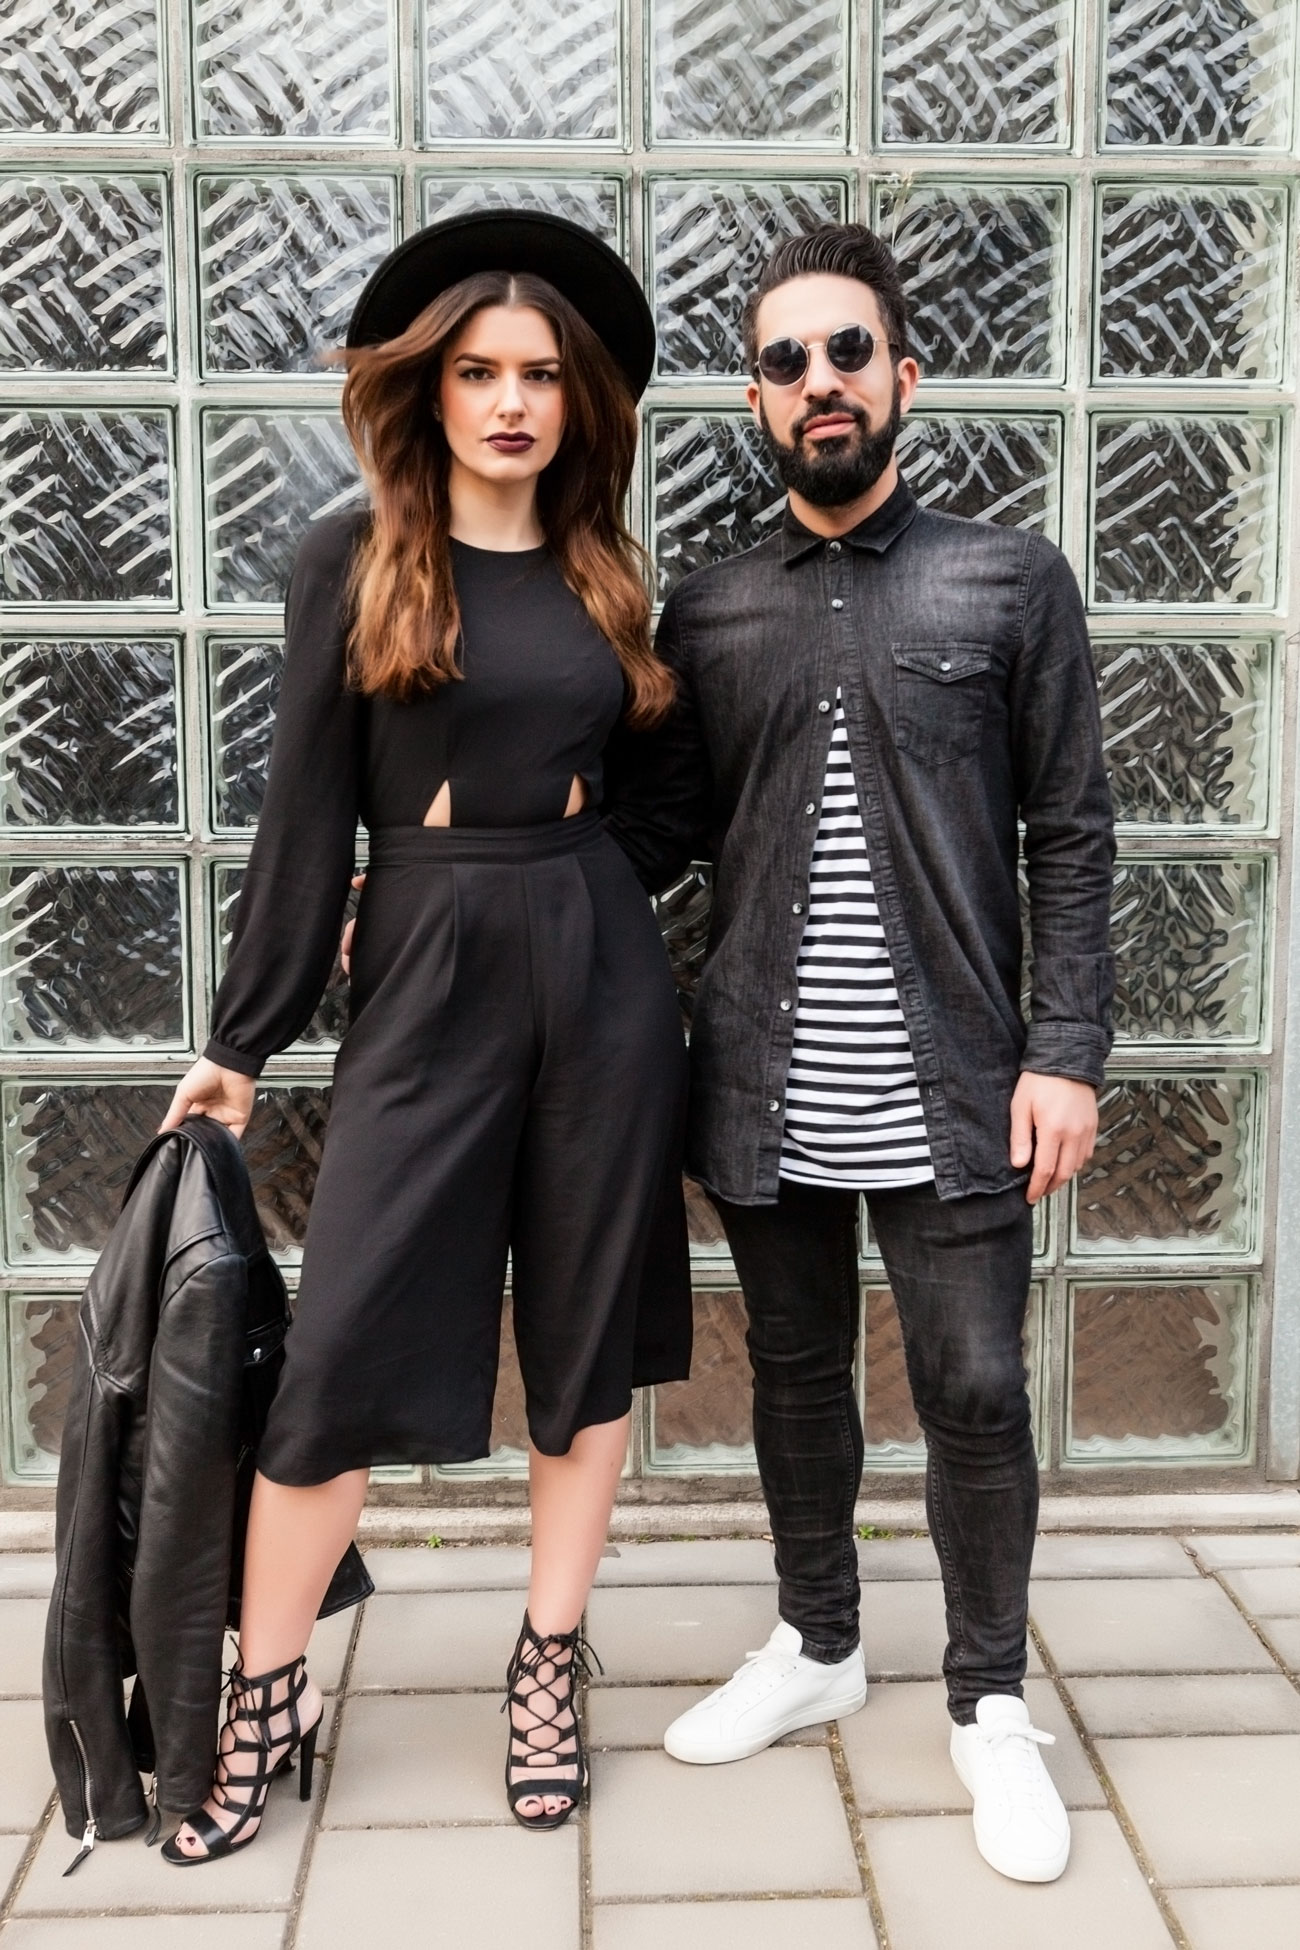 Black and White Streetstyle